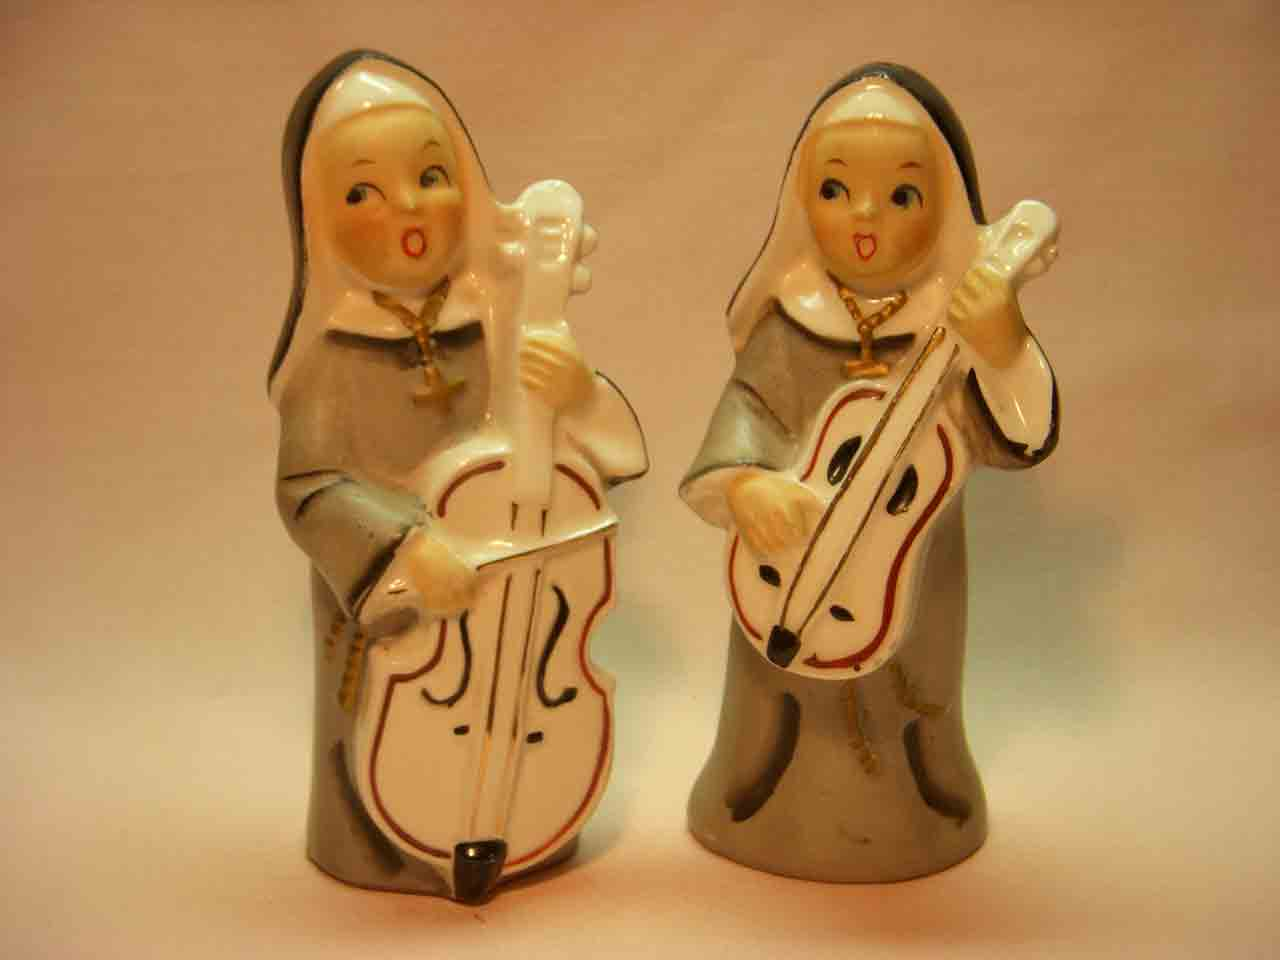 Nuns playing instruments salt and pepper shakers